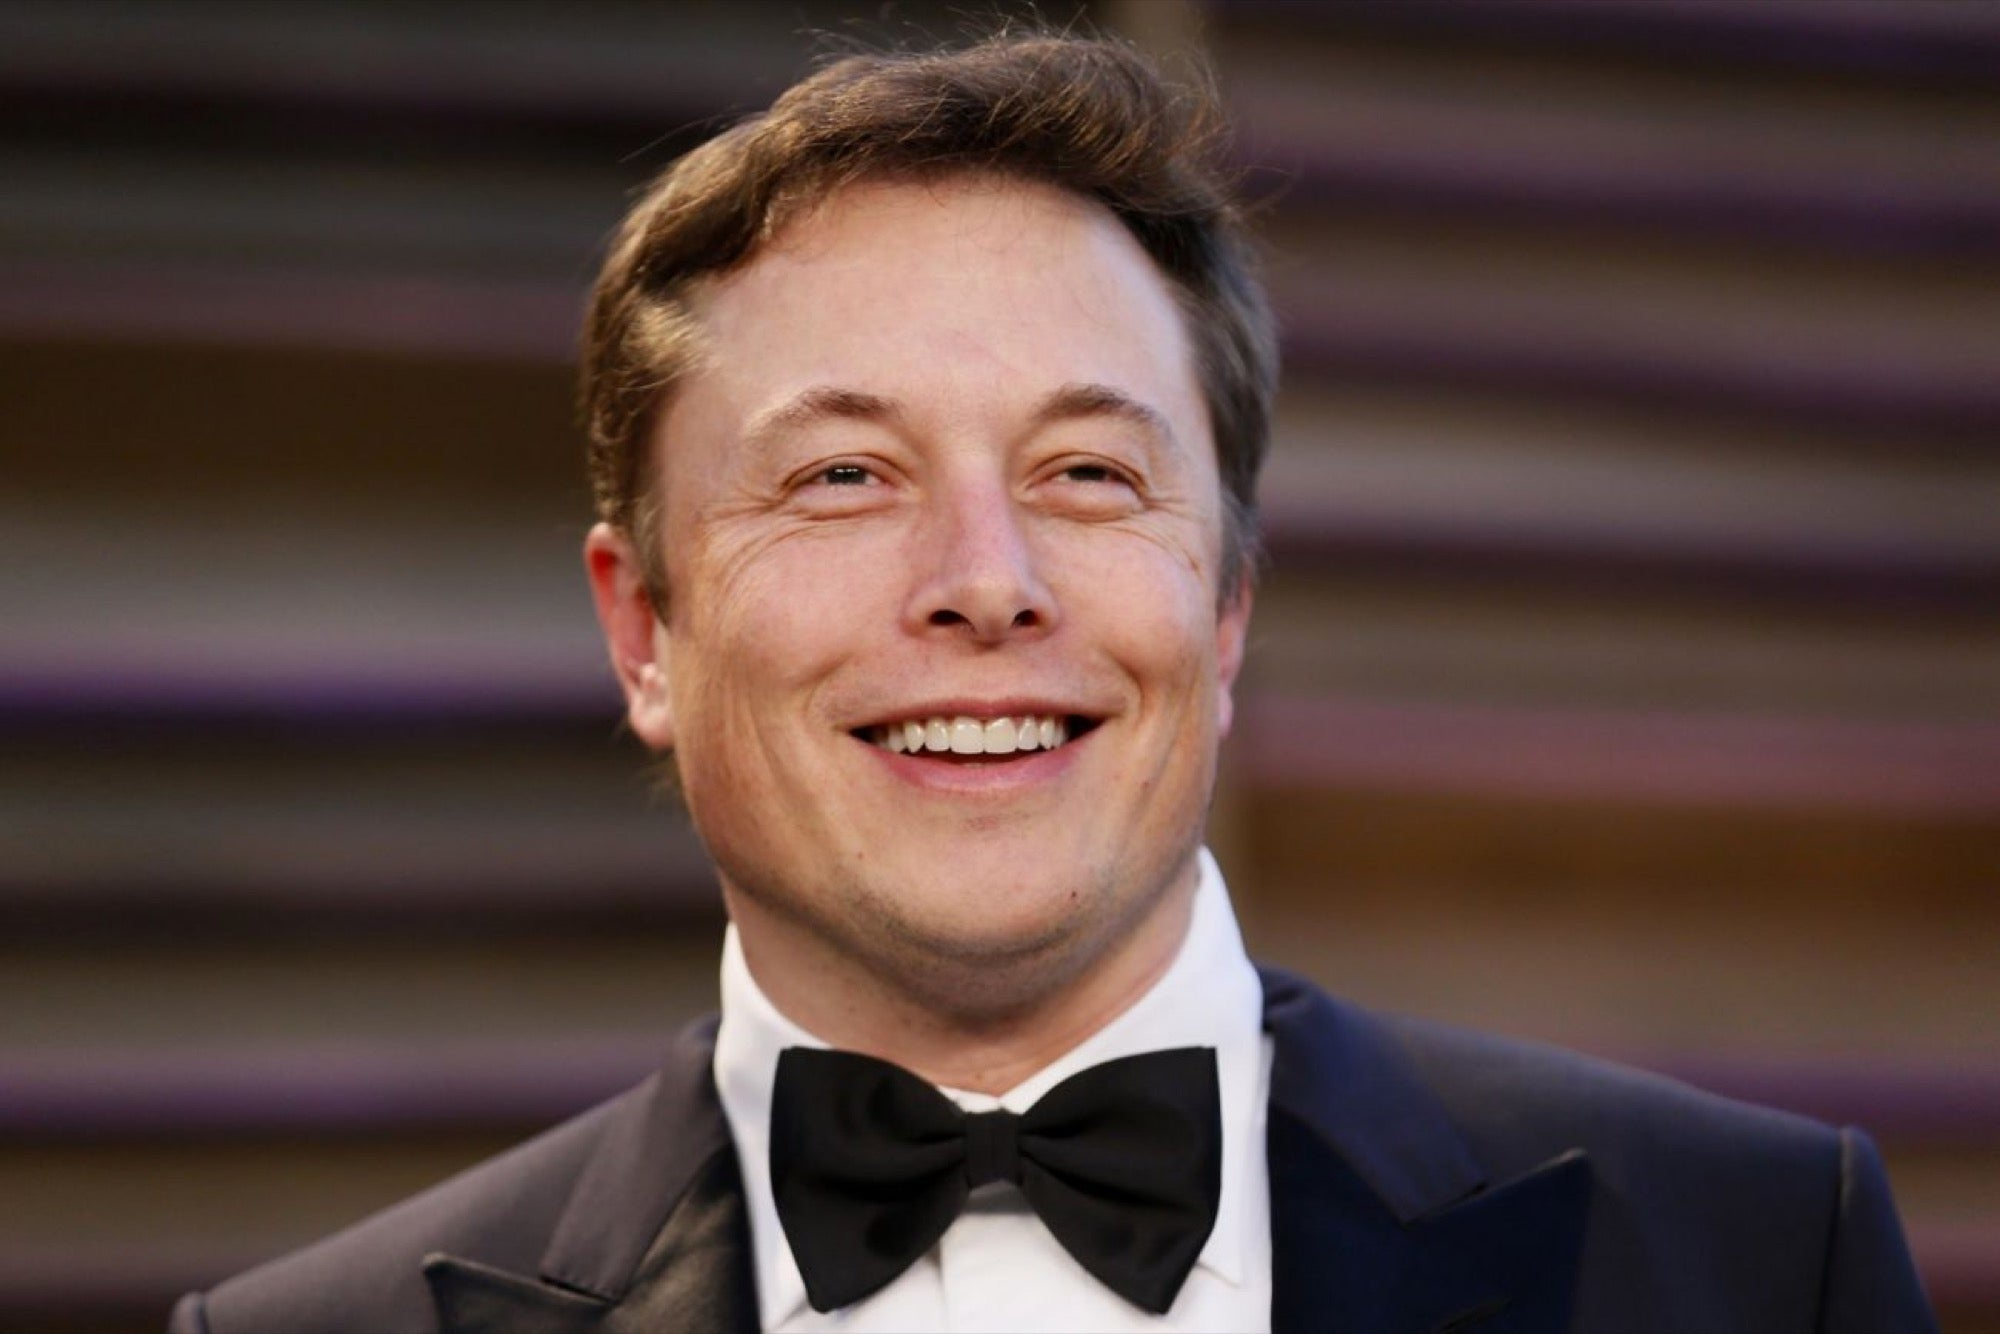 Tesla CEO Elon Musk Earned The First Performance Based Payout